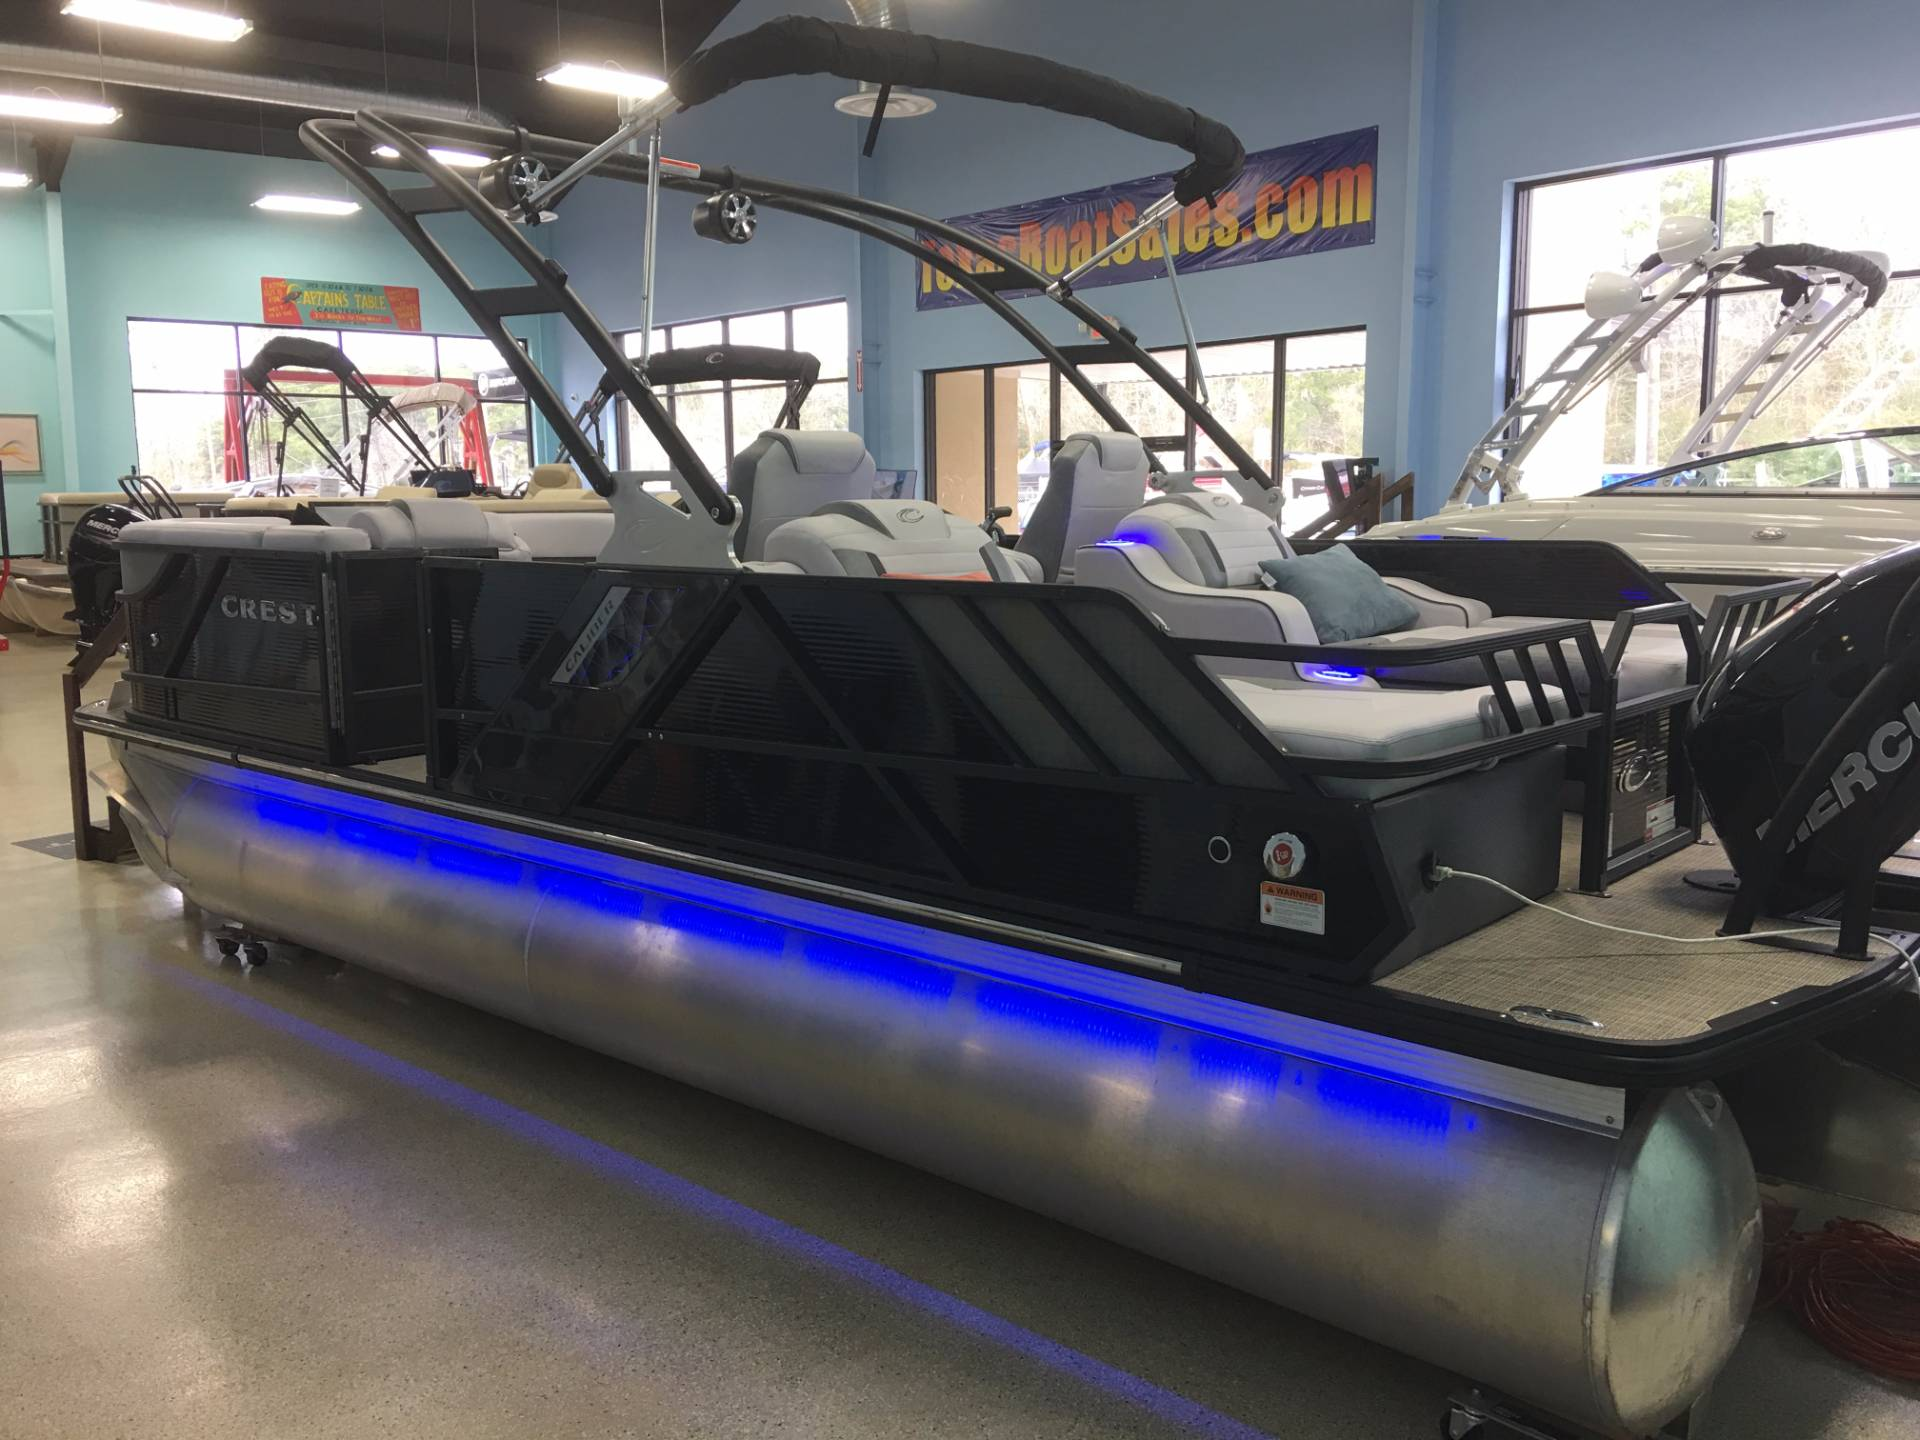 Pontoon boats with bathroom for sale - Crest Pontoon Boats Caliber 230 Slr2 Pontoon Boats For Sale Boats Com